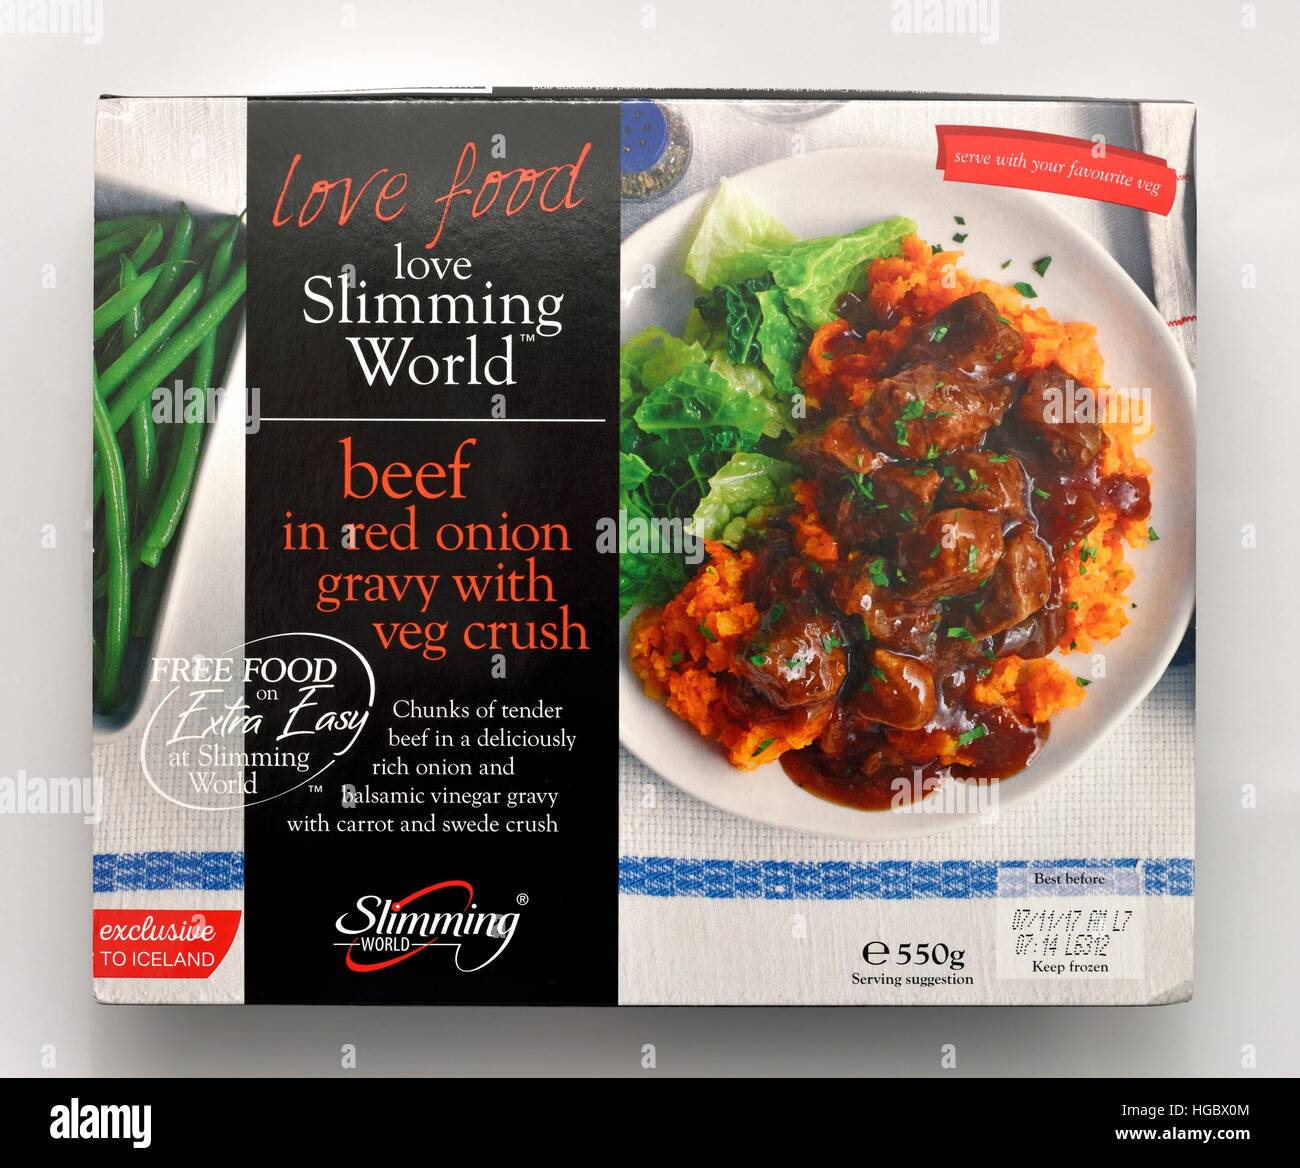 Slimming world beef in red onion gravy with veg crush - Stock Image